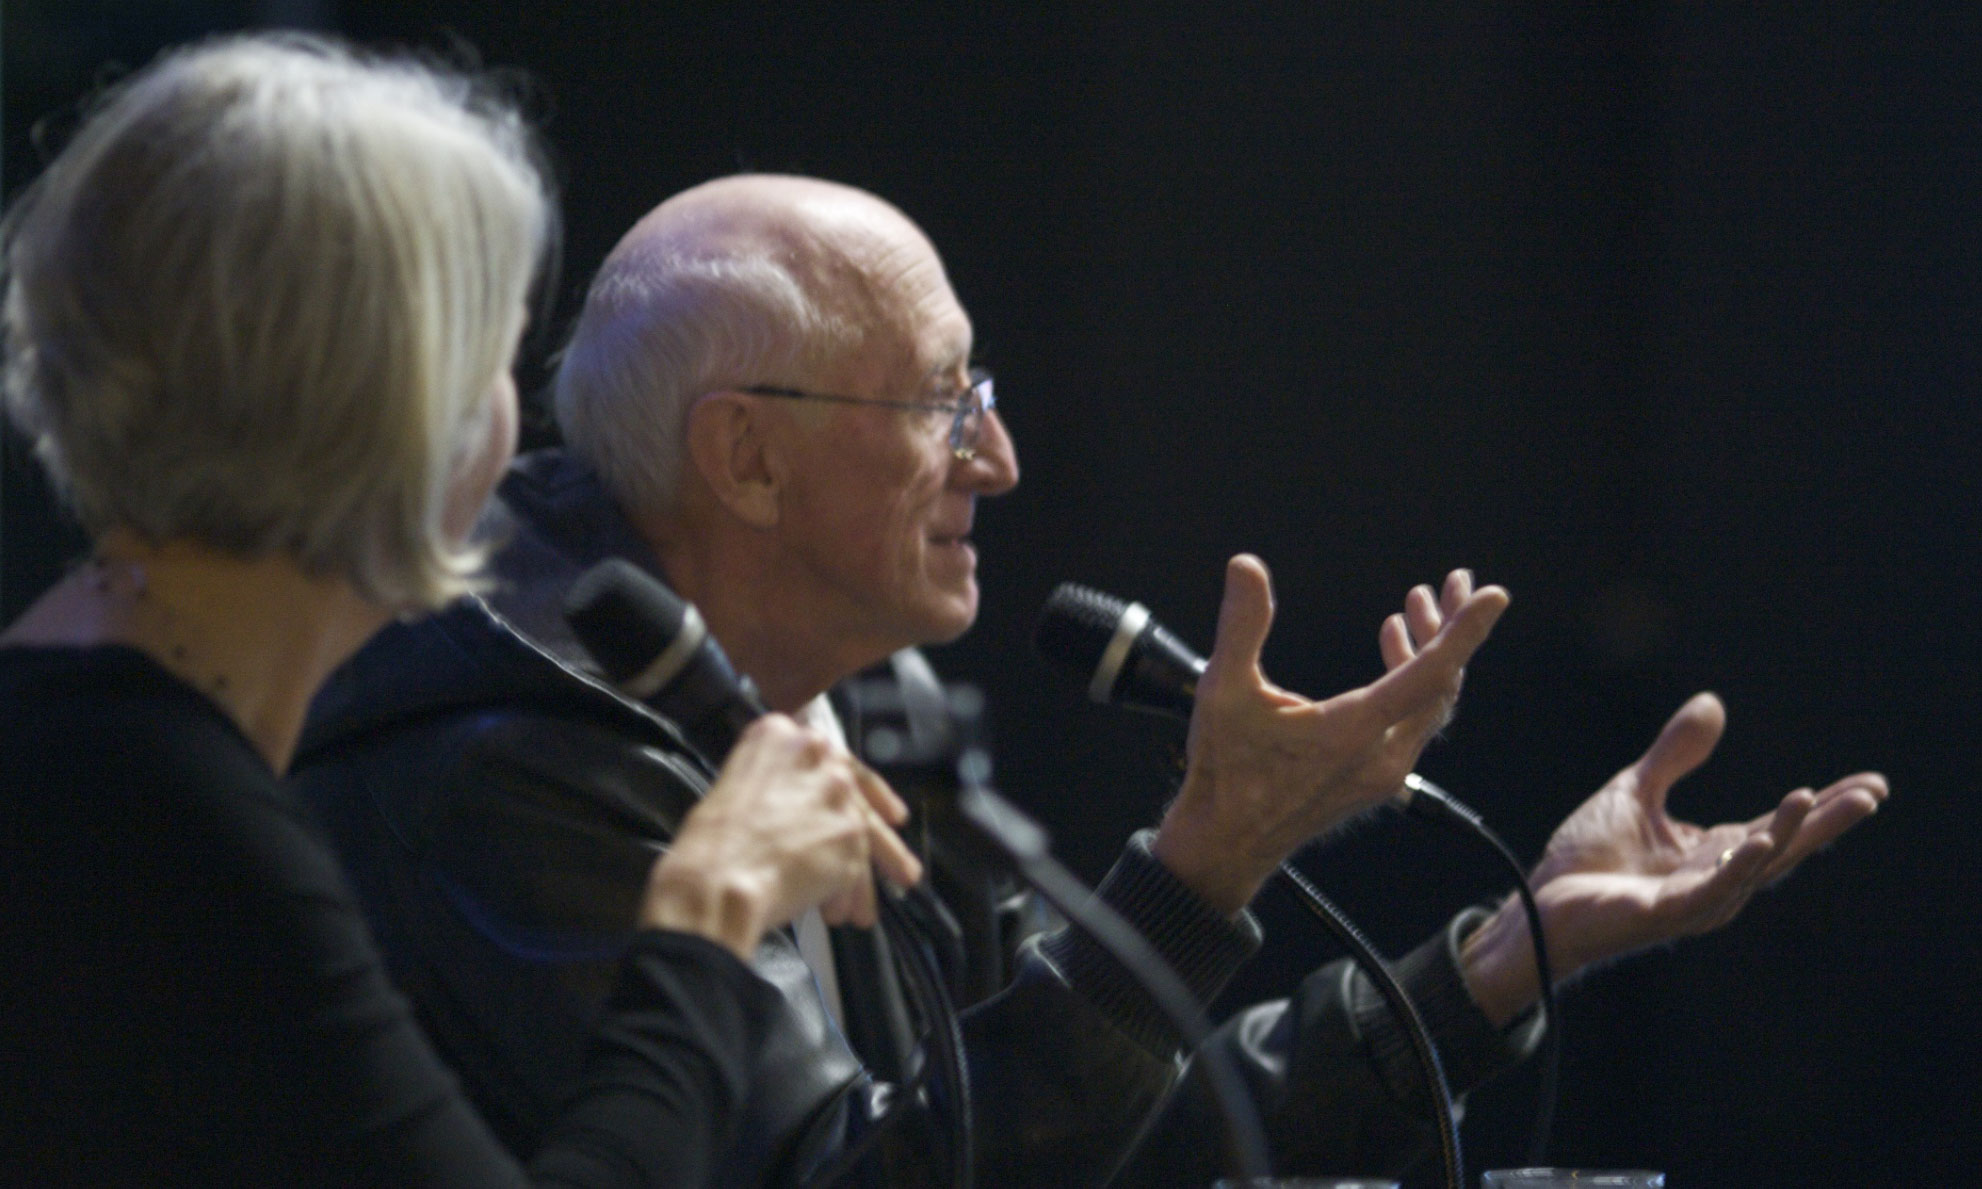 Stewart Brand and Anthea Hartig